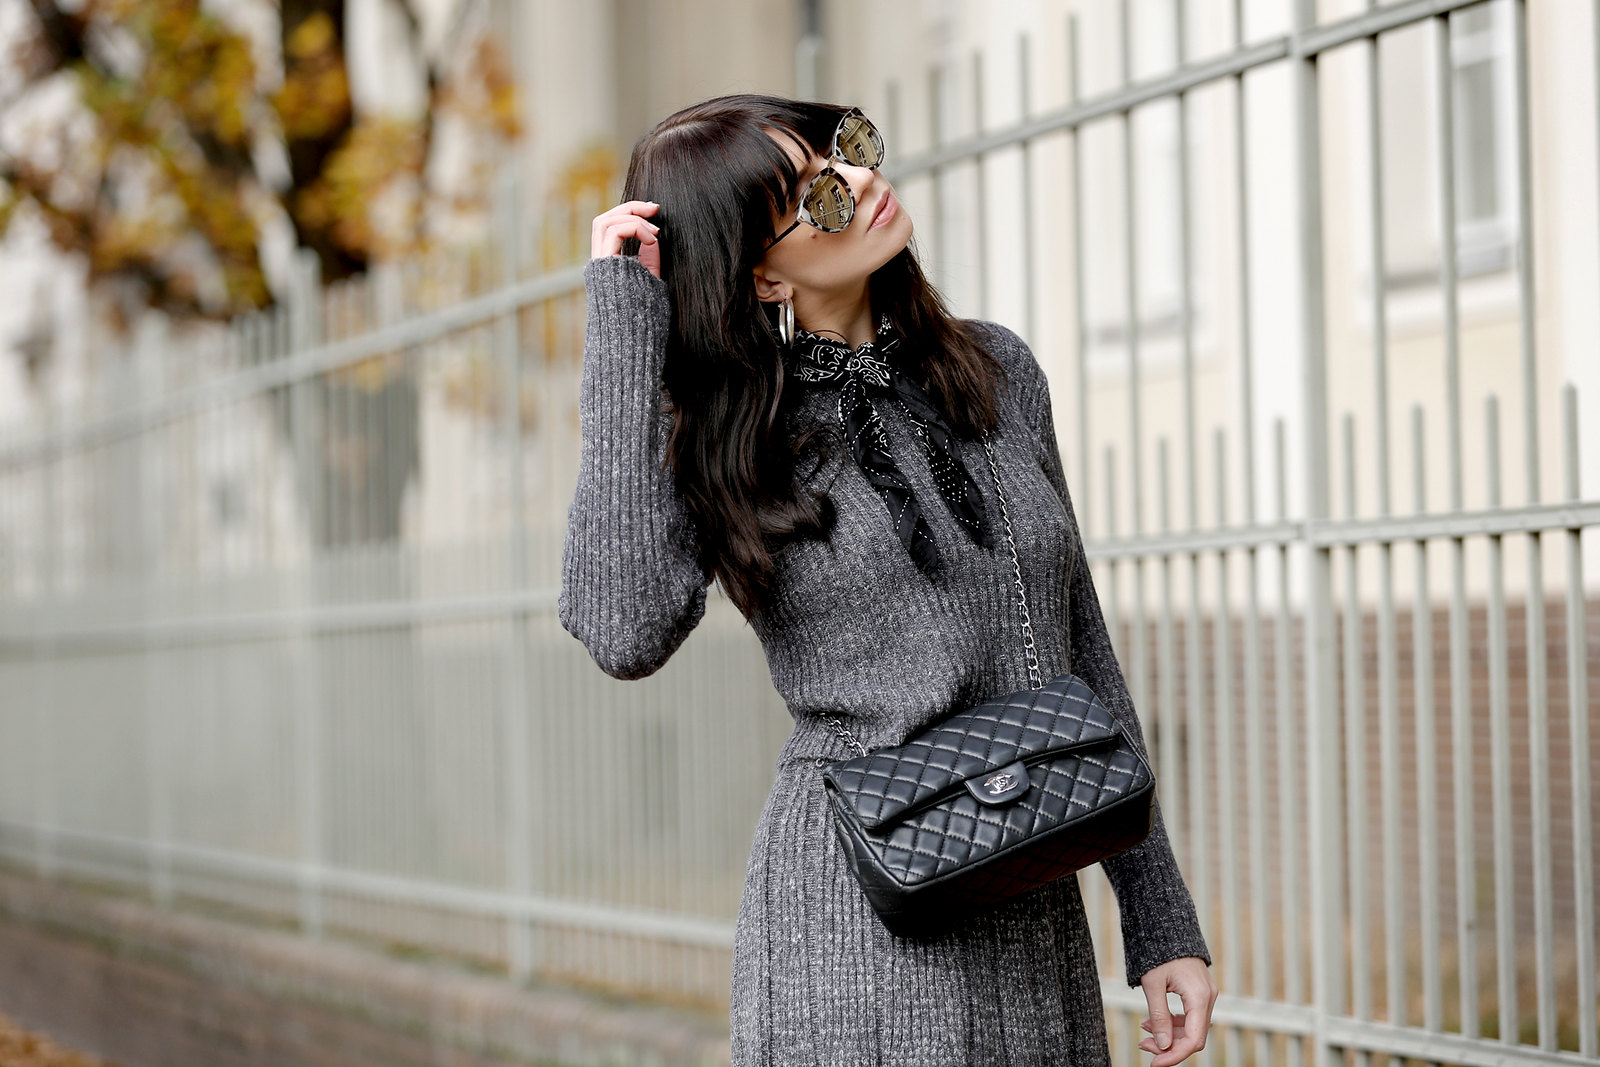 chicwish grey knit combo skirt chic 40s minimal soft winter autumn chanel 2.55 double flap bag slingback pumps sunglasses mirror fashionblogger germany berlin düsseldorf ricarda schernus modeblogger cats & dogs styleblog 2